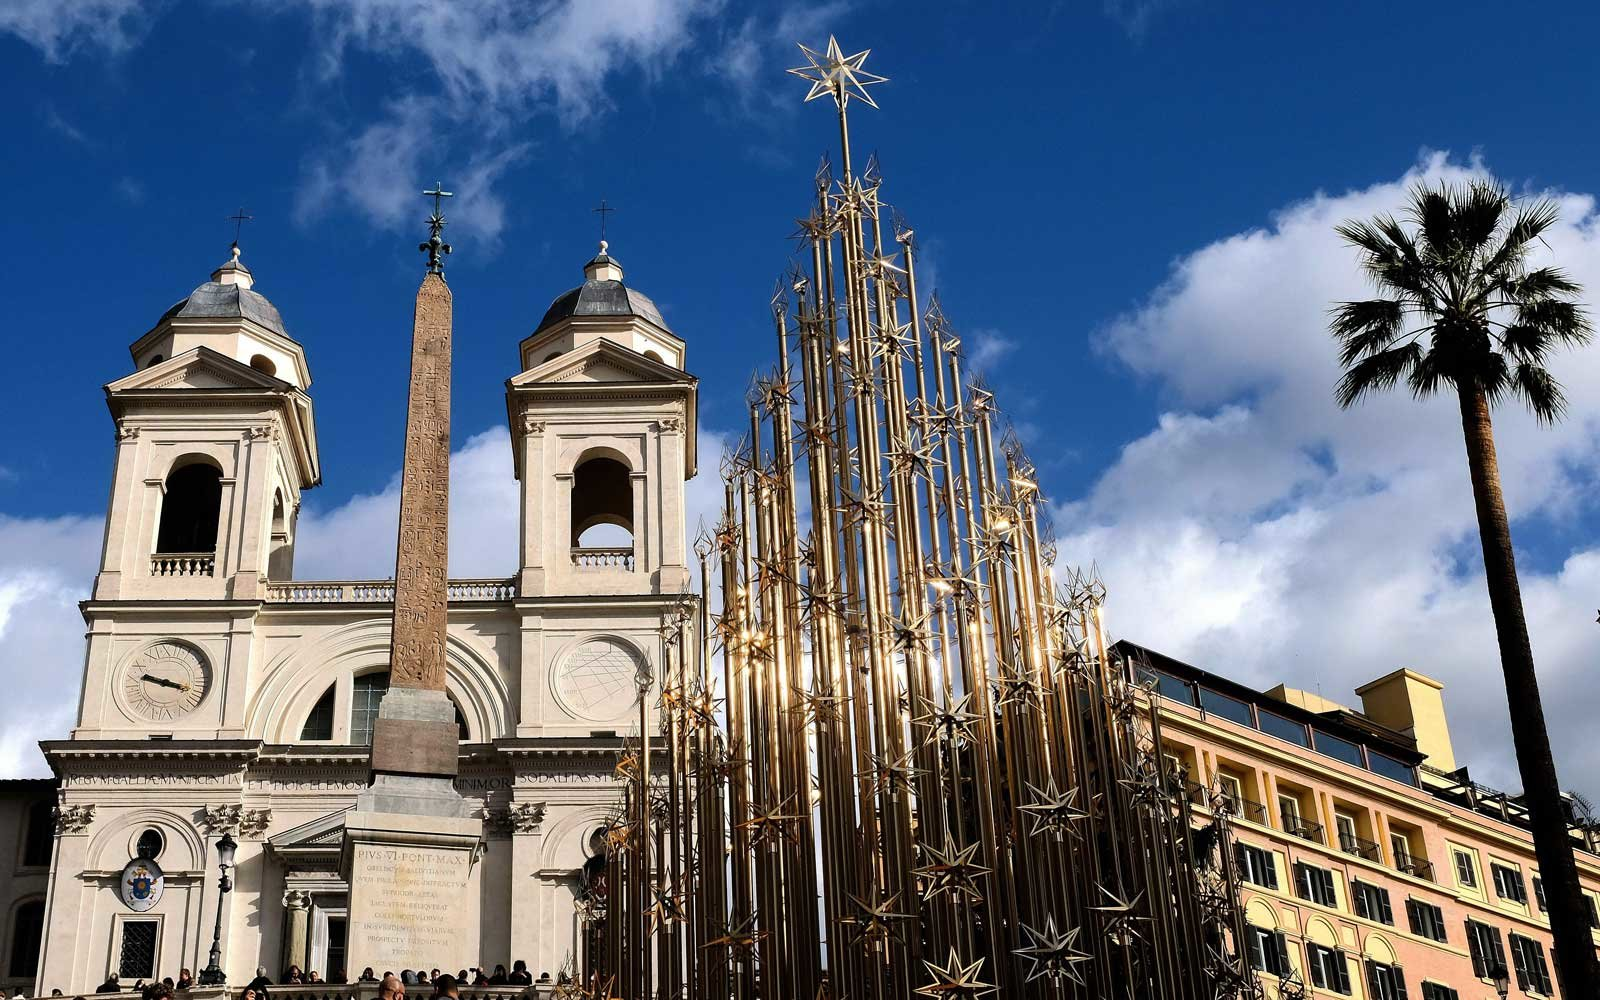 Metal Christmas tree in Rome, Italy